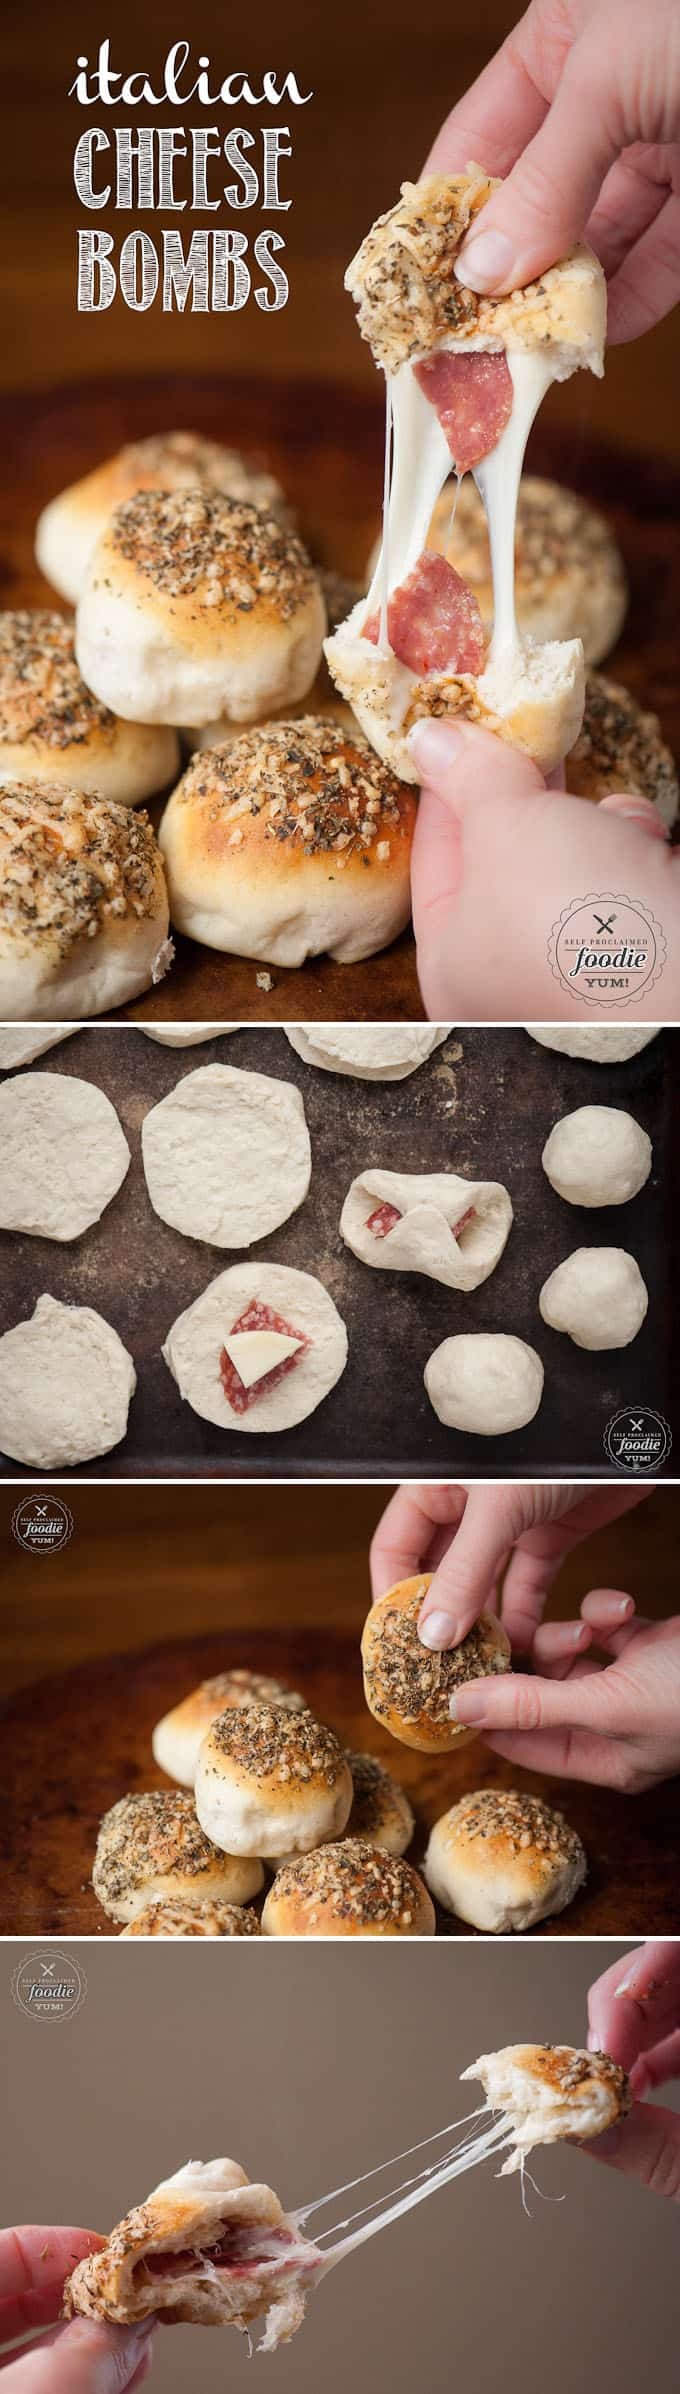 Italian Cheese Bombs take only minutes to prepare using premade biscuit dough wrapped around melty Italian cheese and salami and are everyone's favorite.